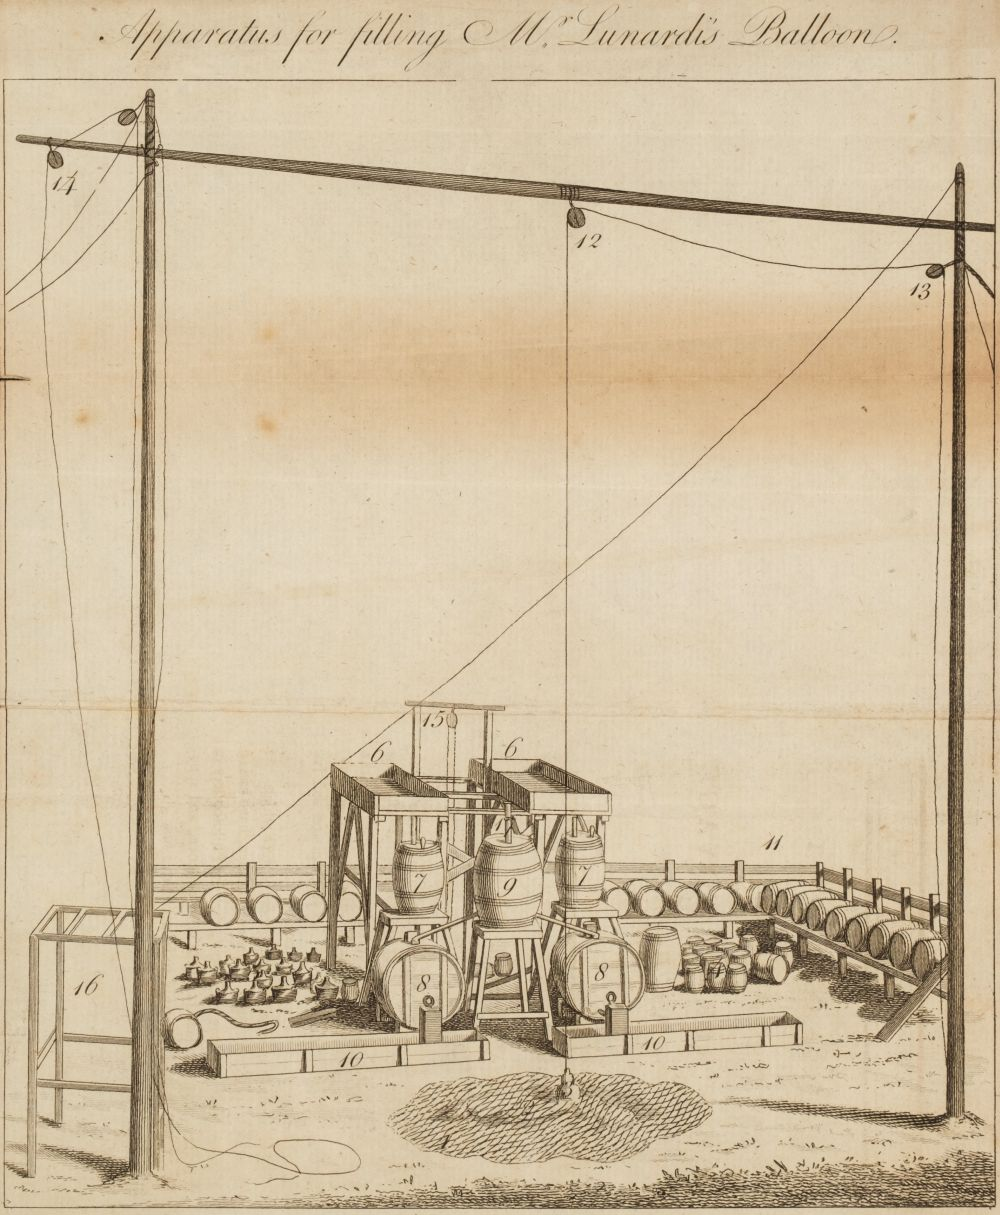 Lunardi (Vincenzo). An Account of the First Aerial Voyage in England, - Image 3 of 4